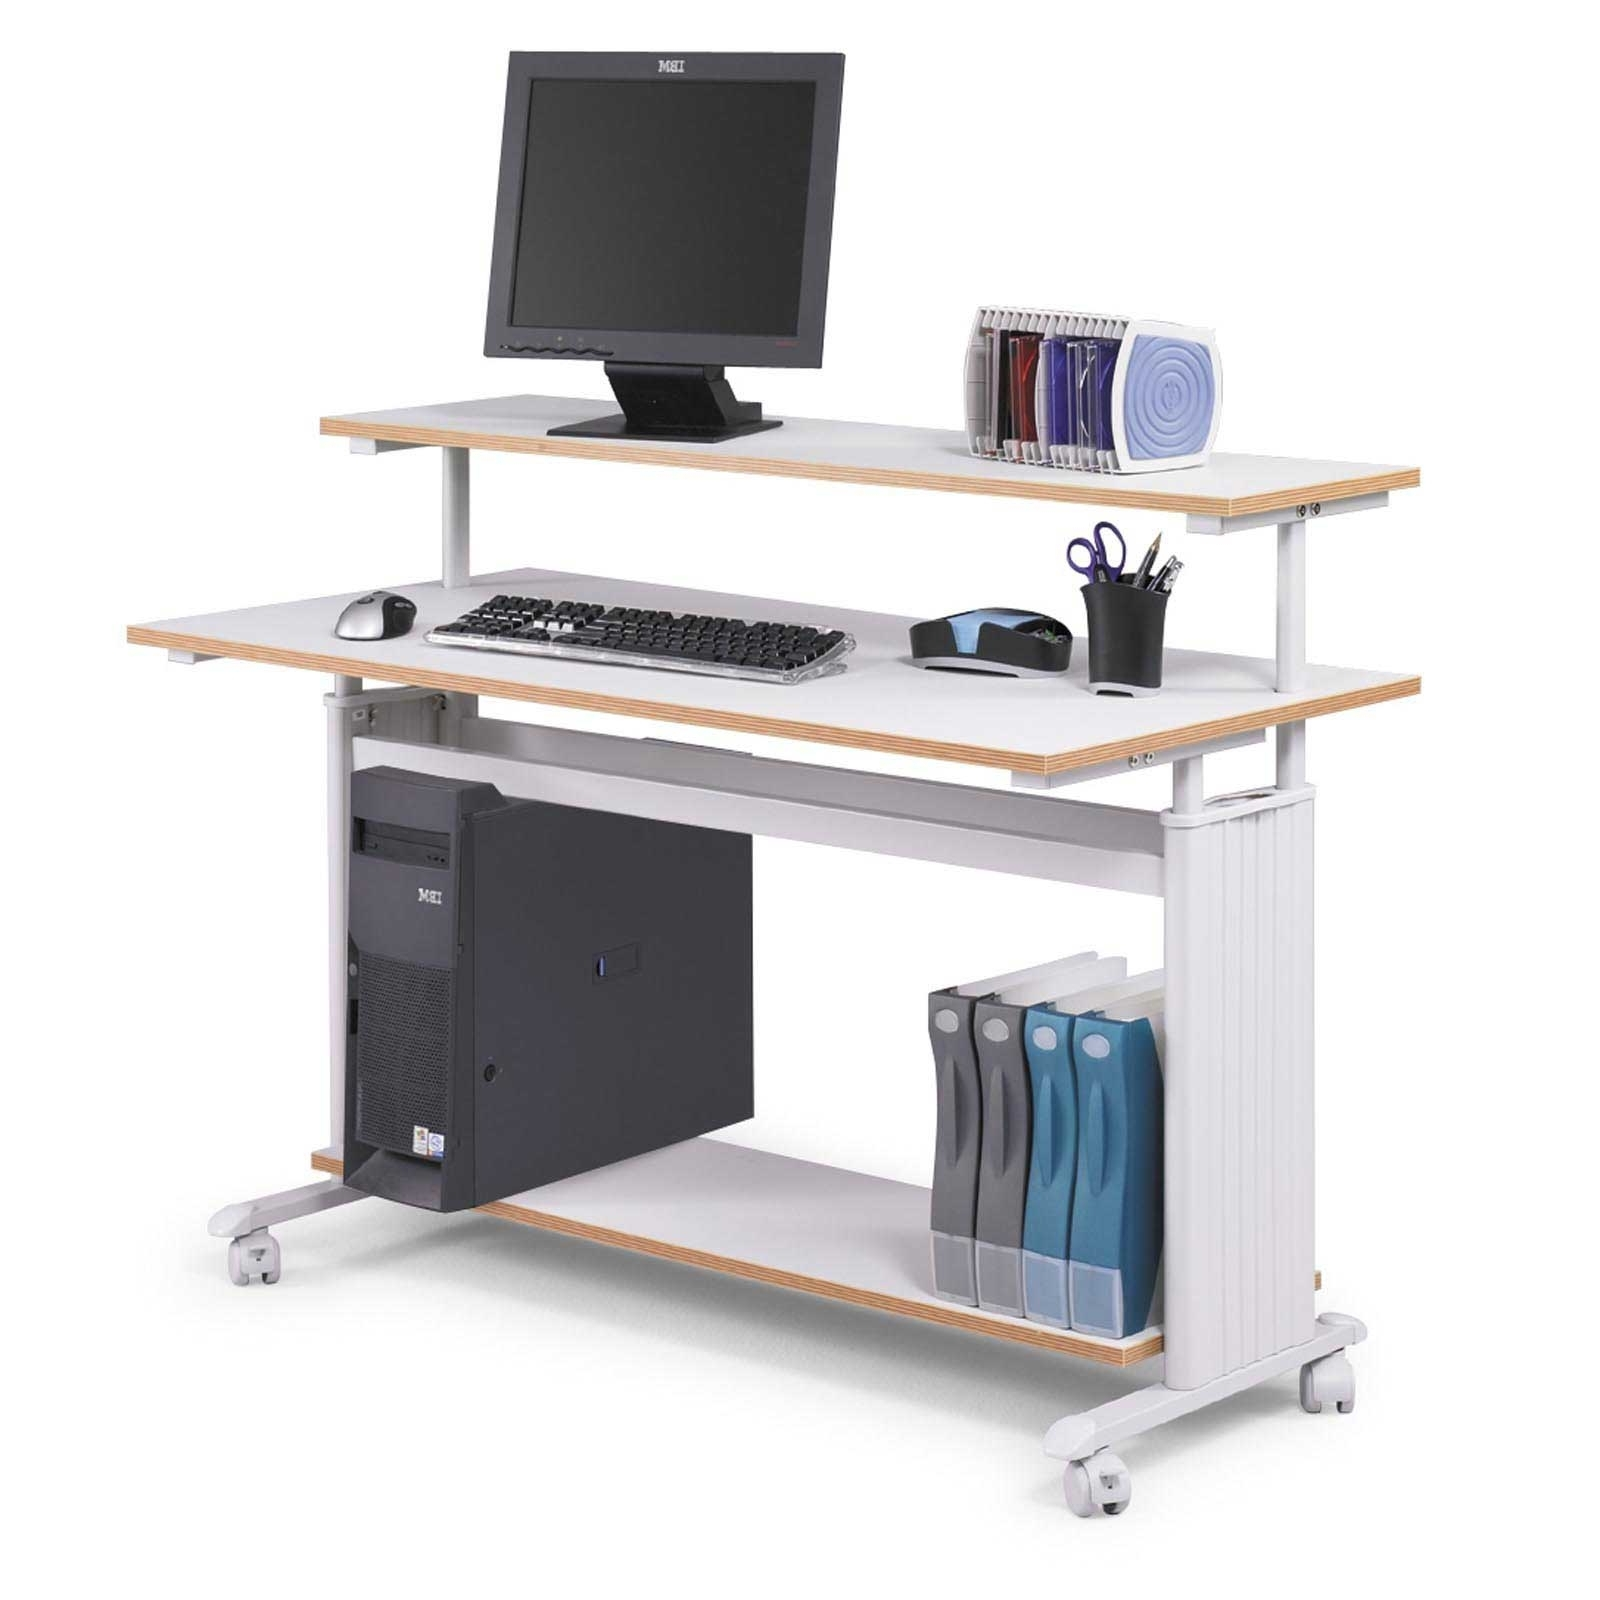 Computer Desks With Wheels Pertaining To Best And Newest Furniture, White Gloss Computer Desk And Roll Legs For Minimalist (View 7 of 20)